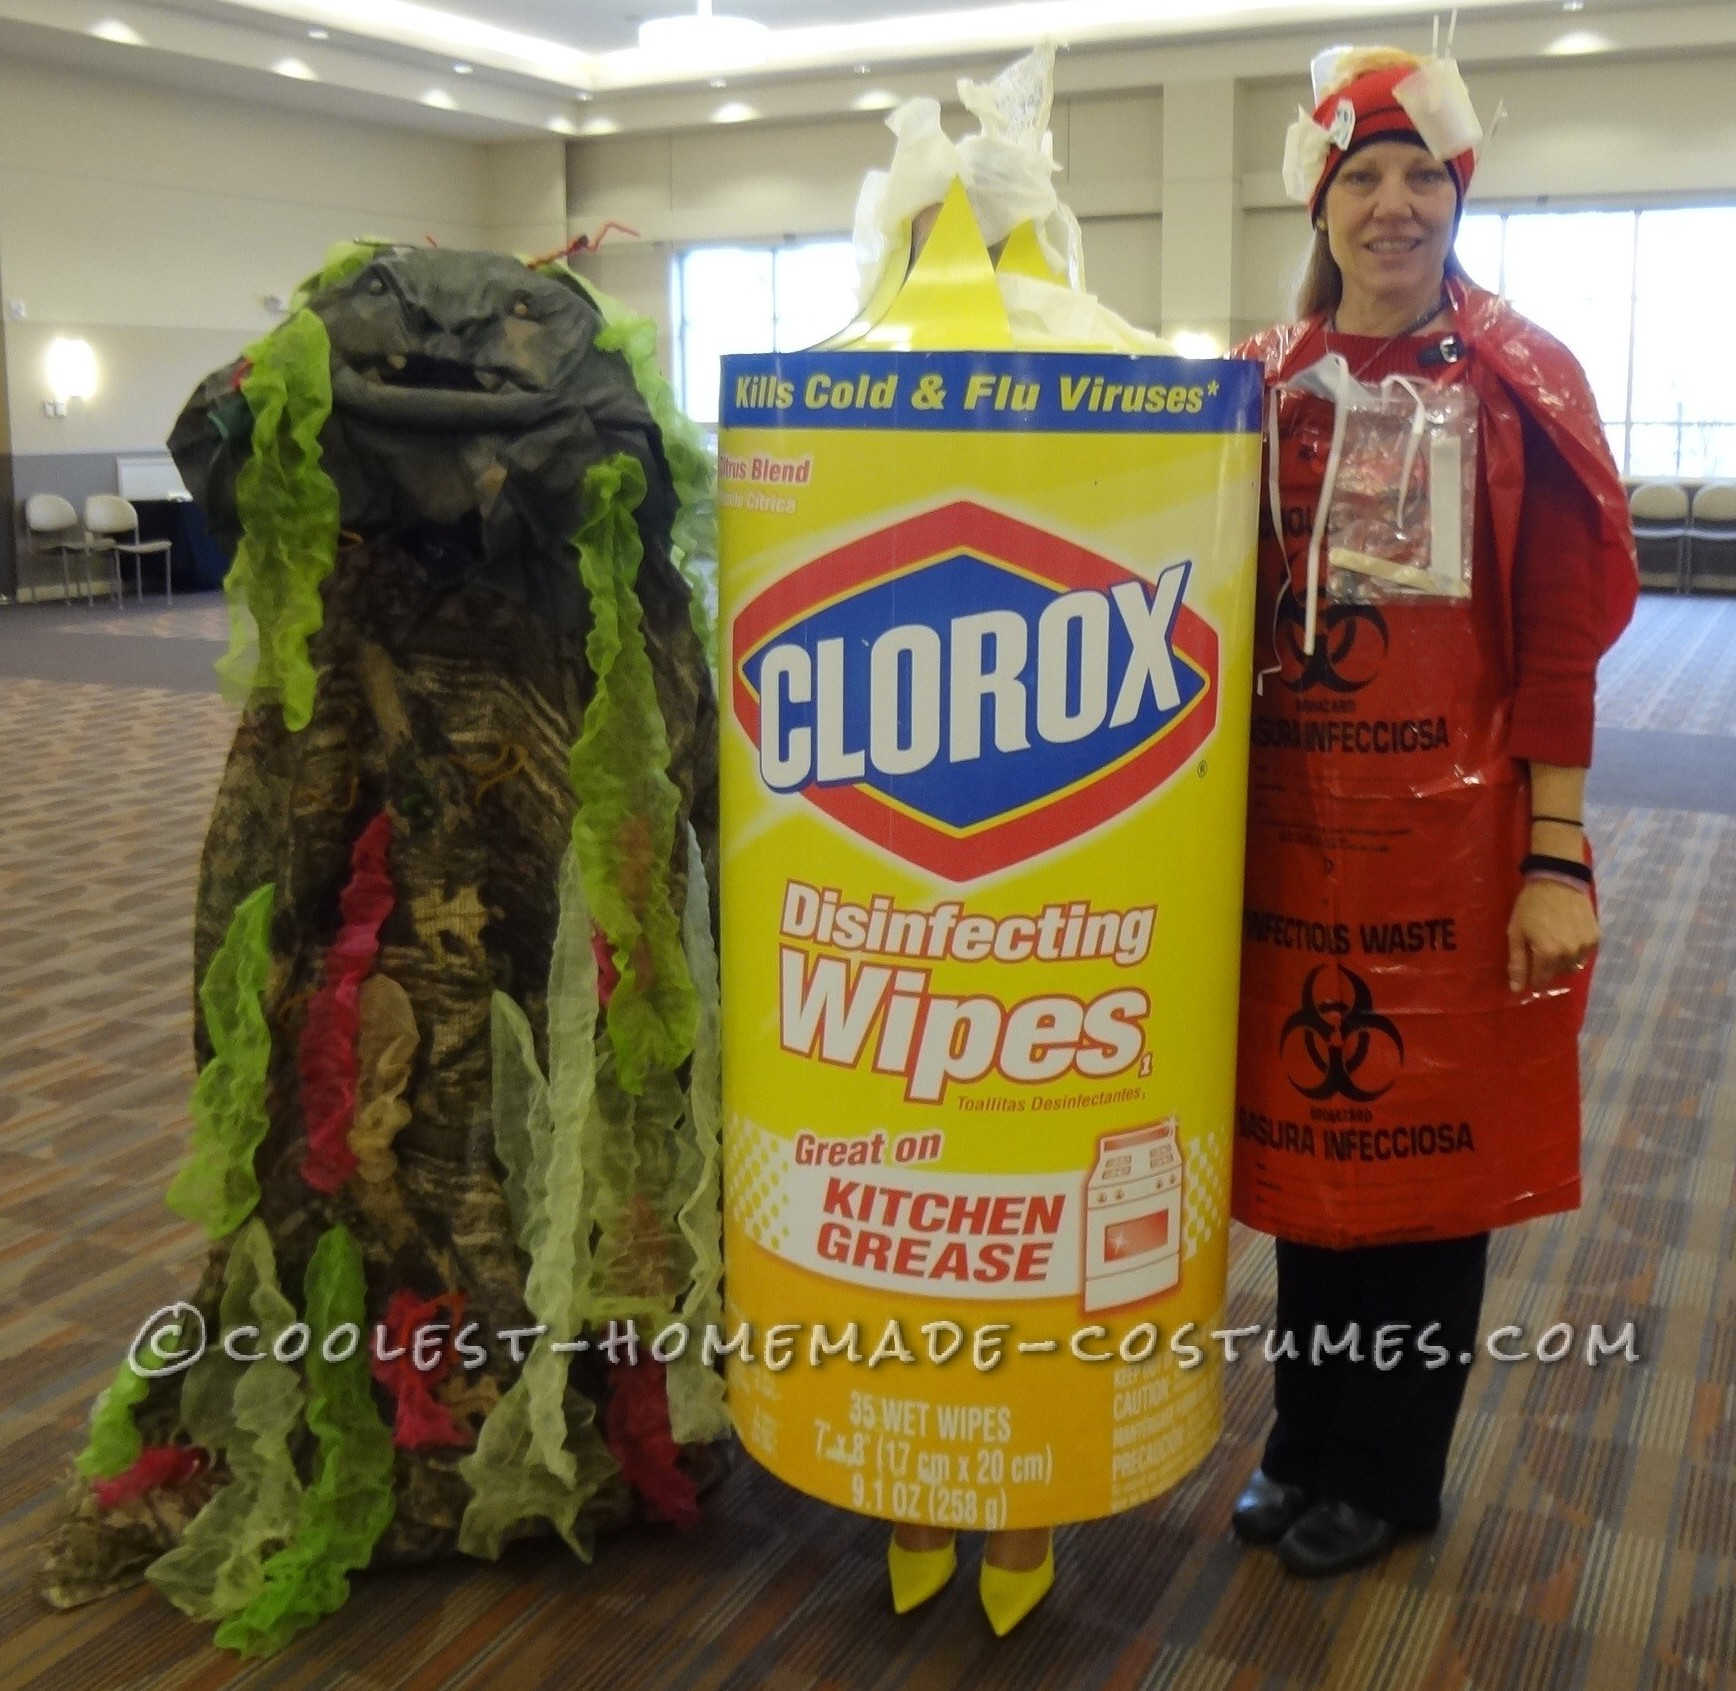 Disinfectant Wipe, Germ and Biohazard Waste Group Costume